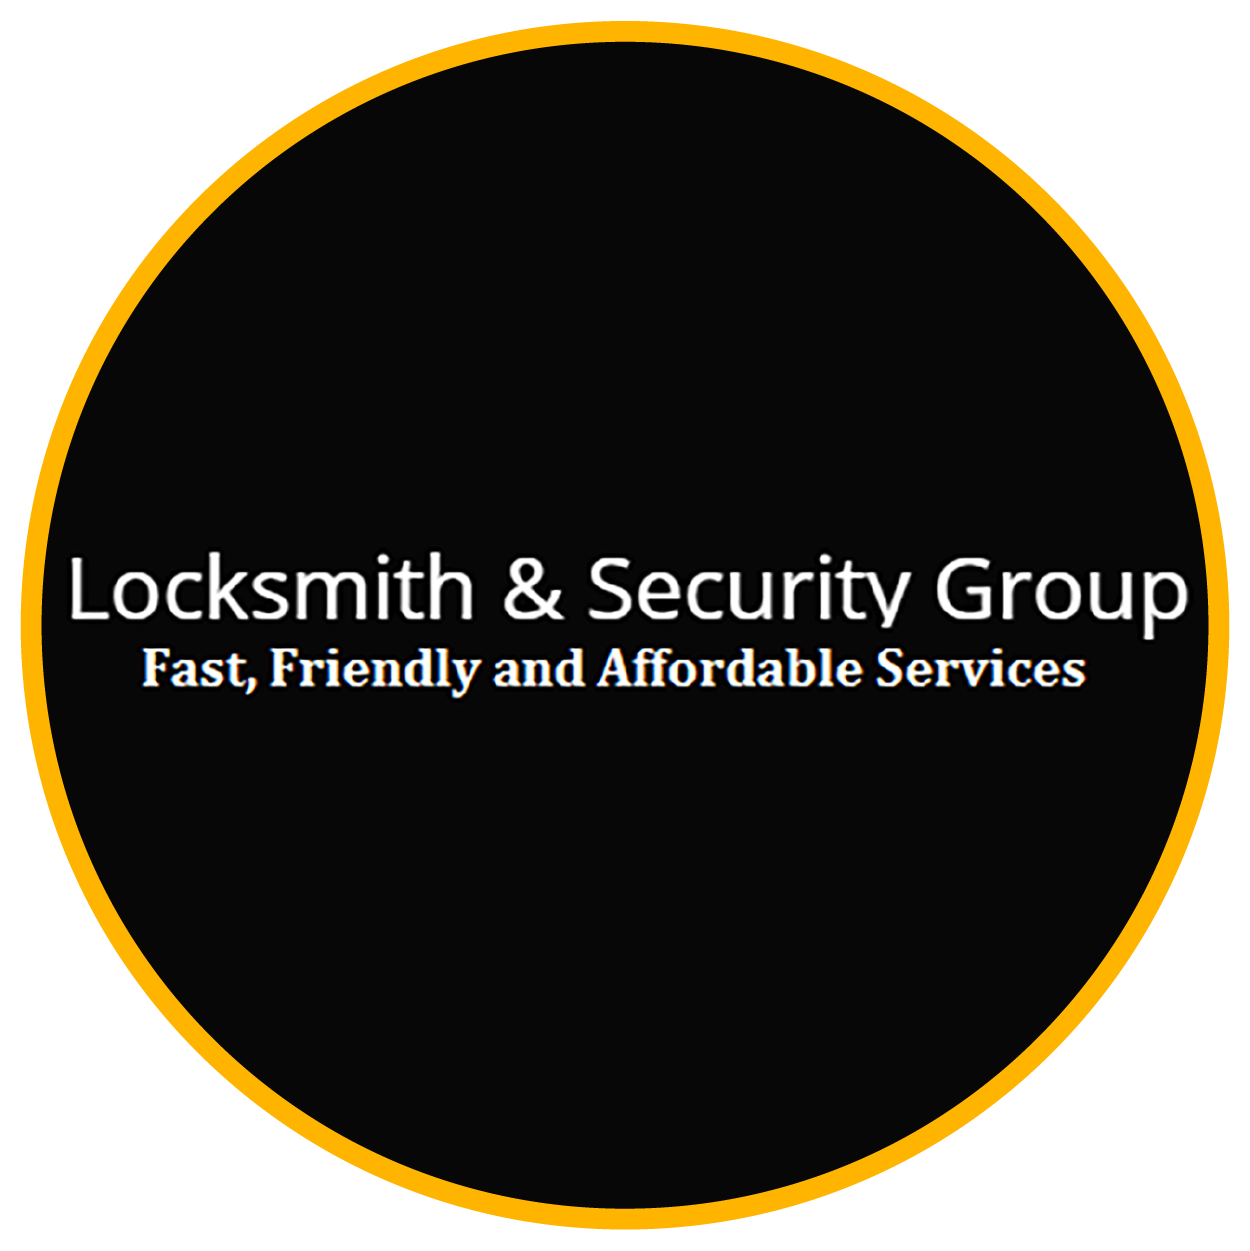 Locksmith and security group-favicon.png